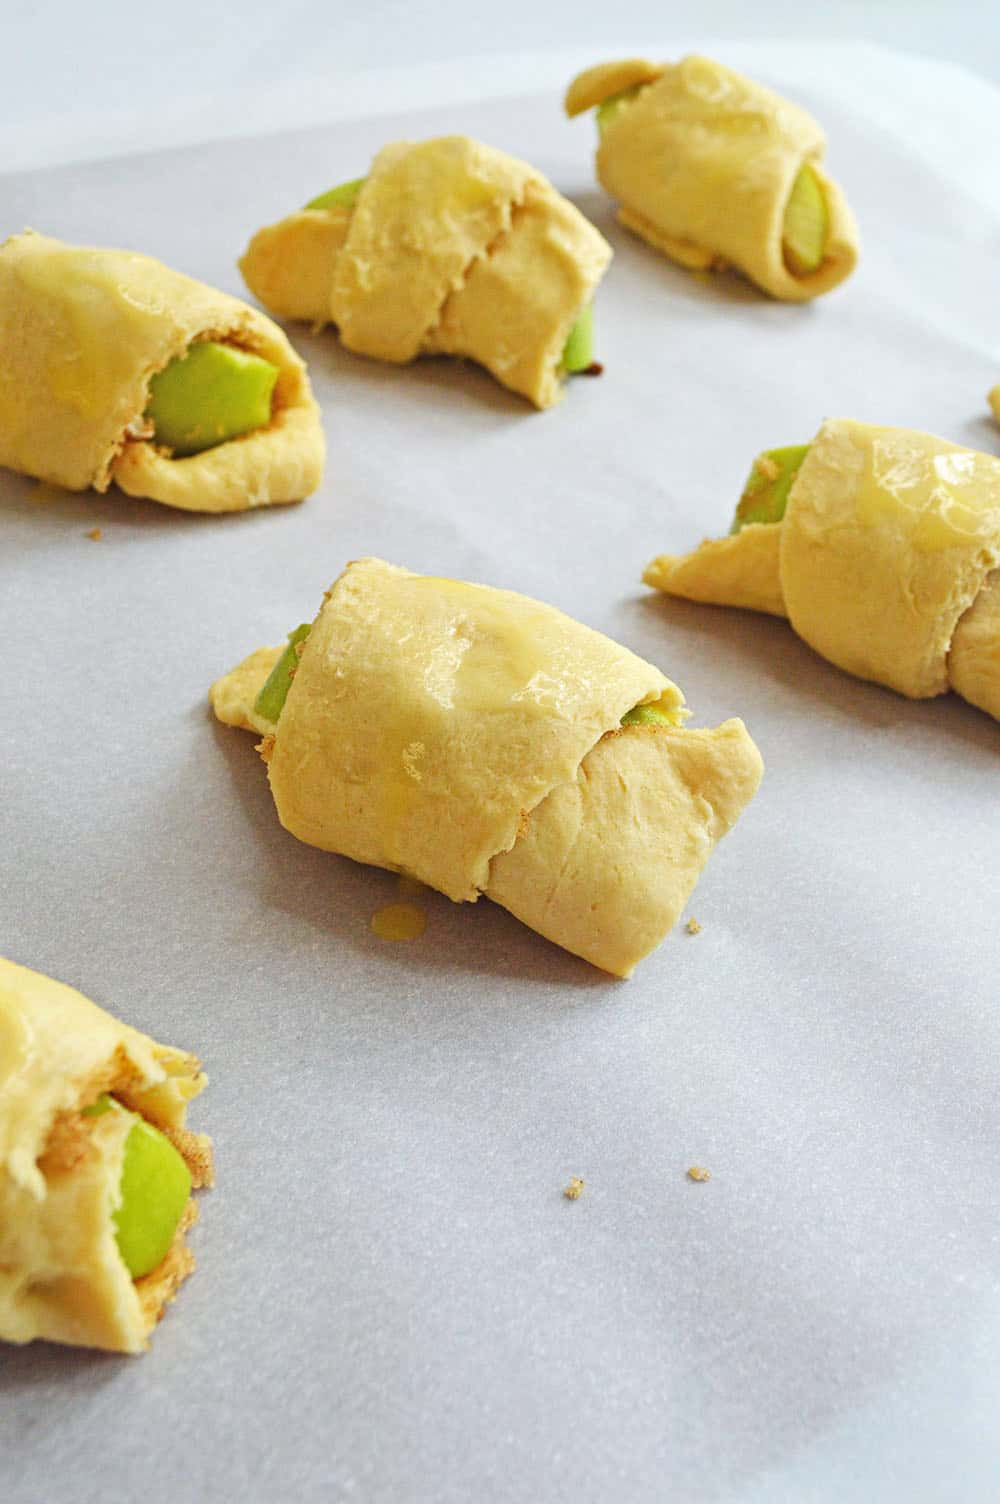 wrap the apples in a crescent roll